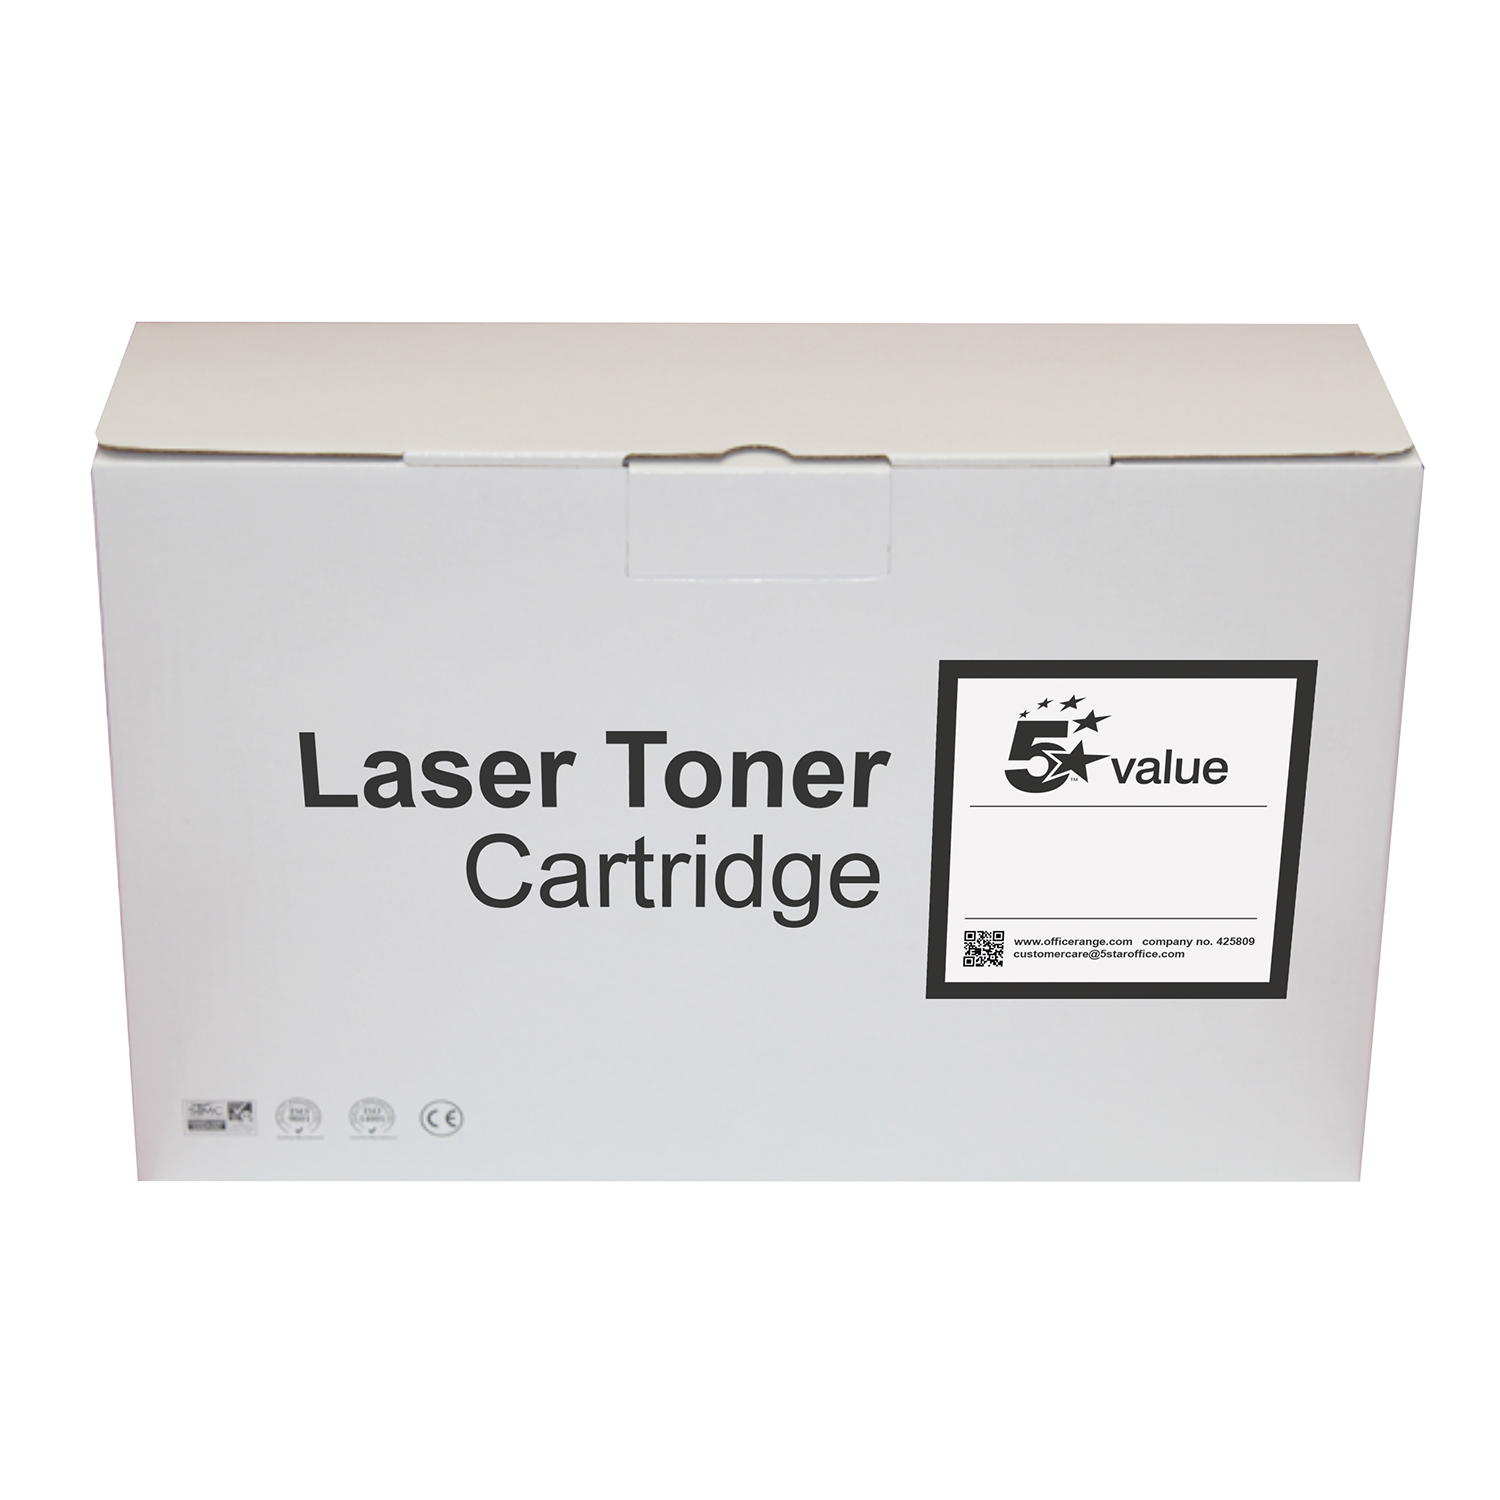 5 Star Value Brother Toner Cartridge TN3170 Black